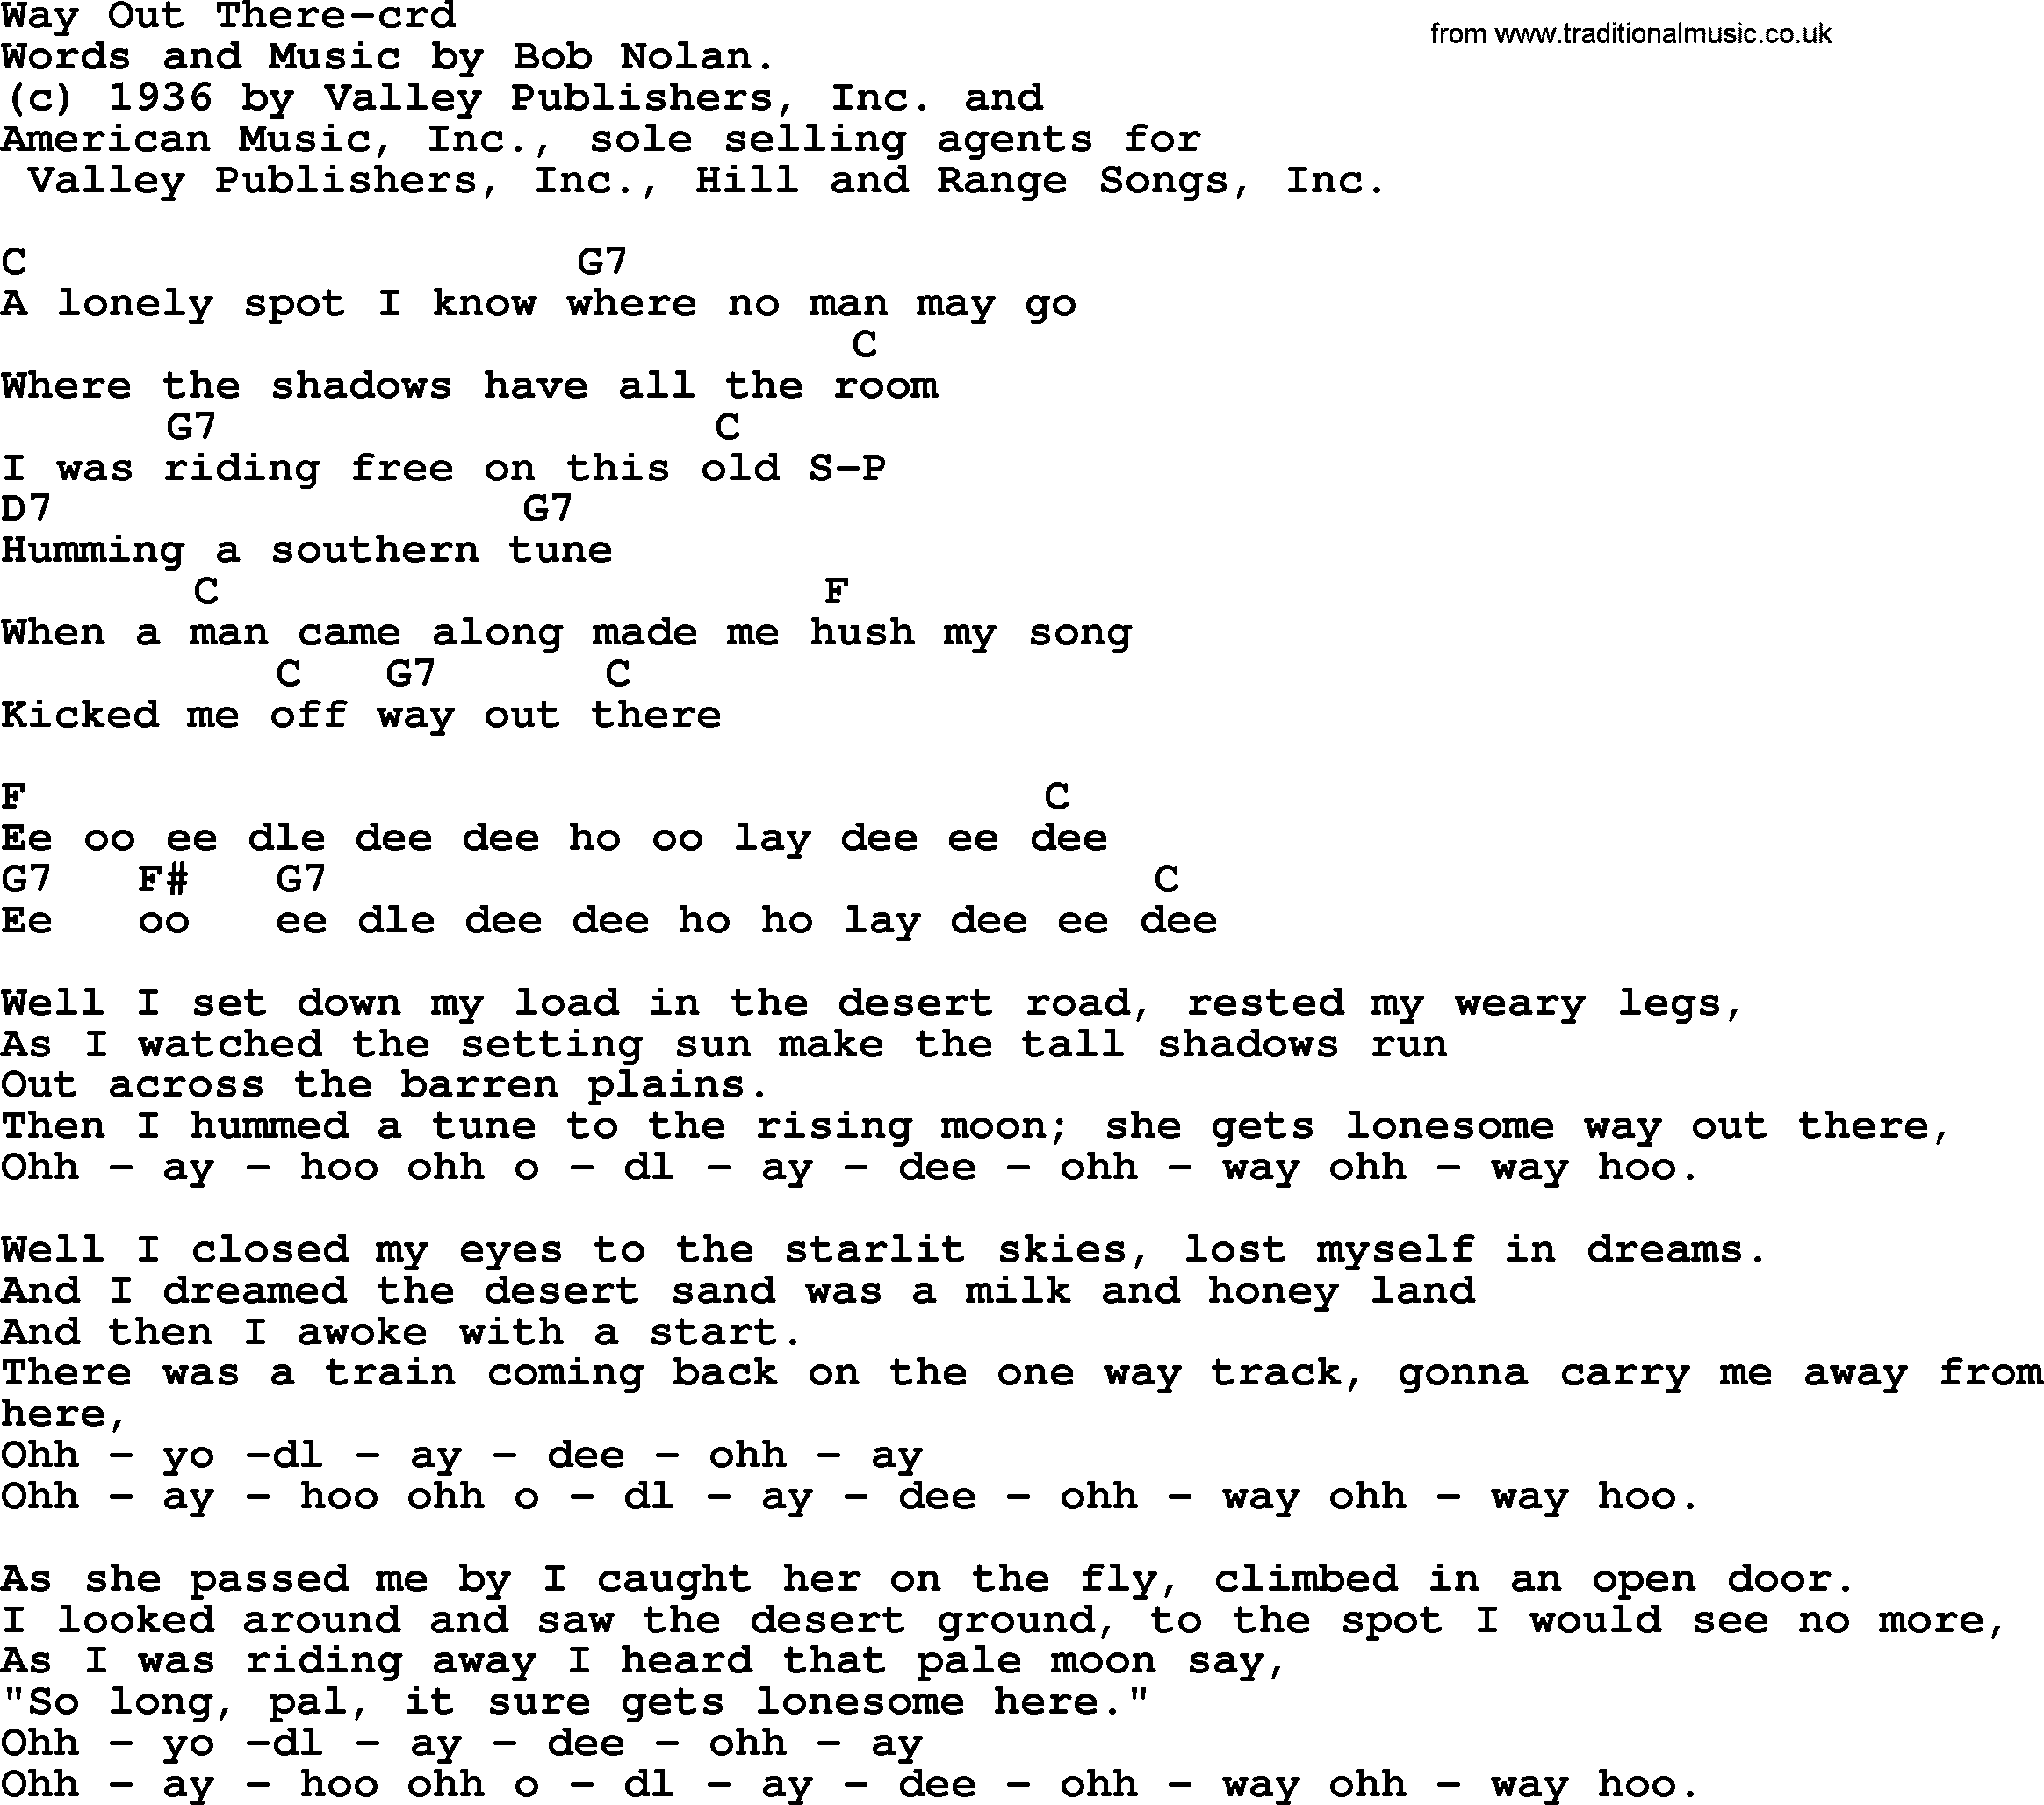 Pete seeger song way out there lyrics and chords pete seeger song way out there lyrics and chords hexwebz Image collections